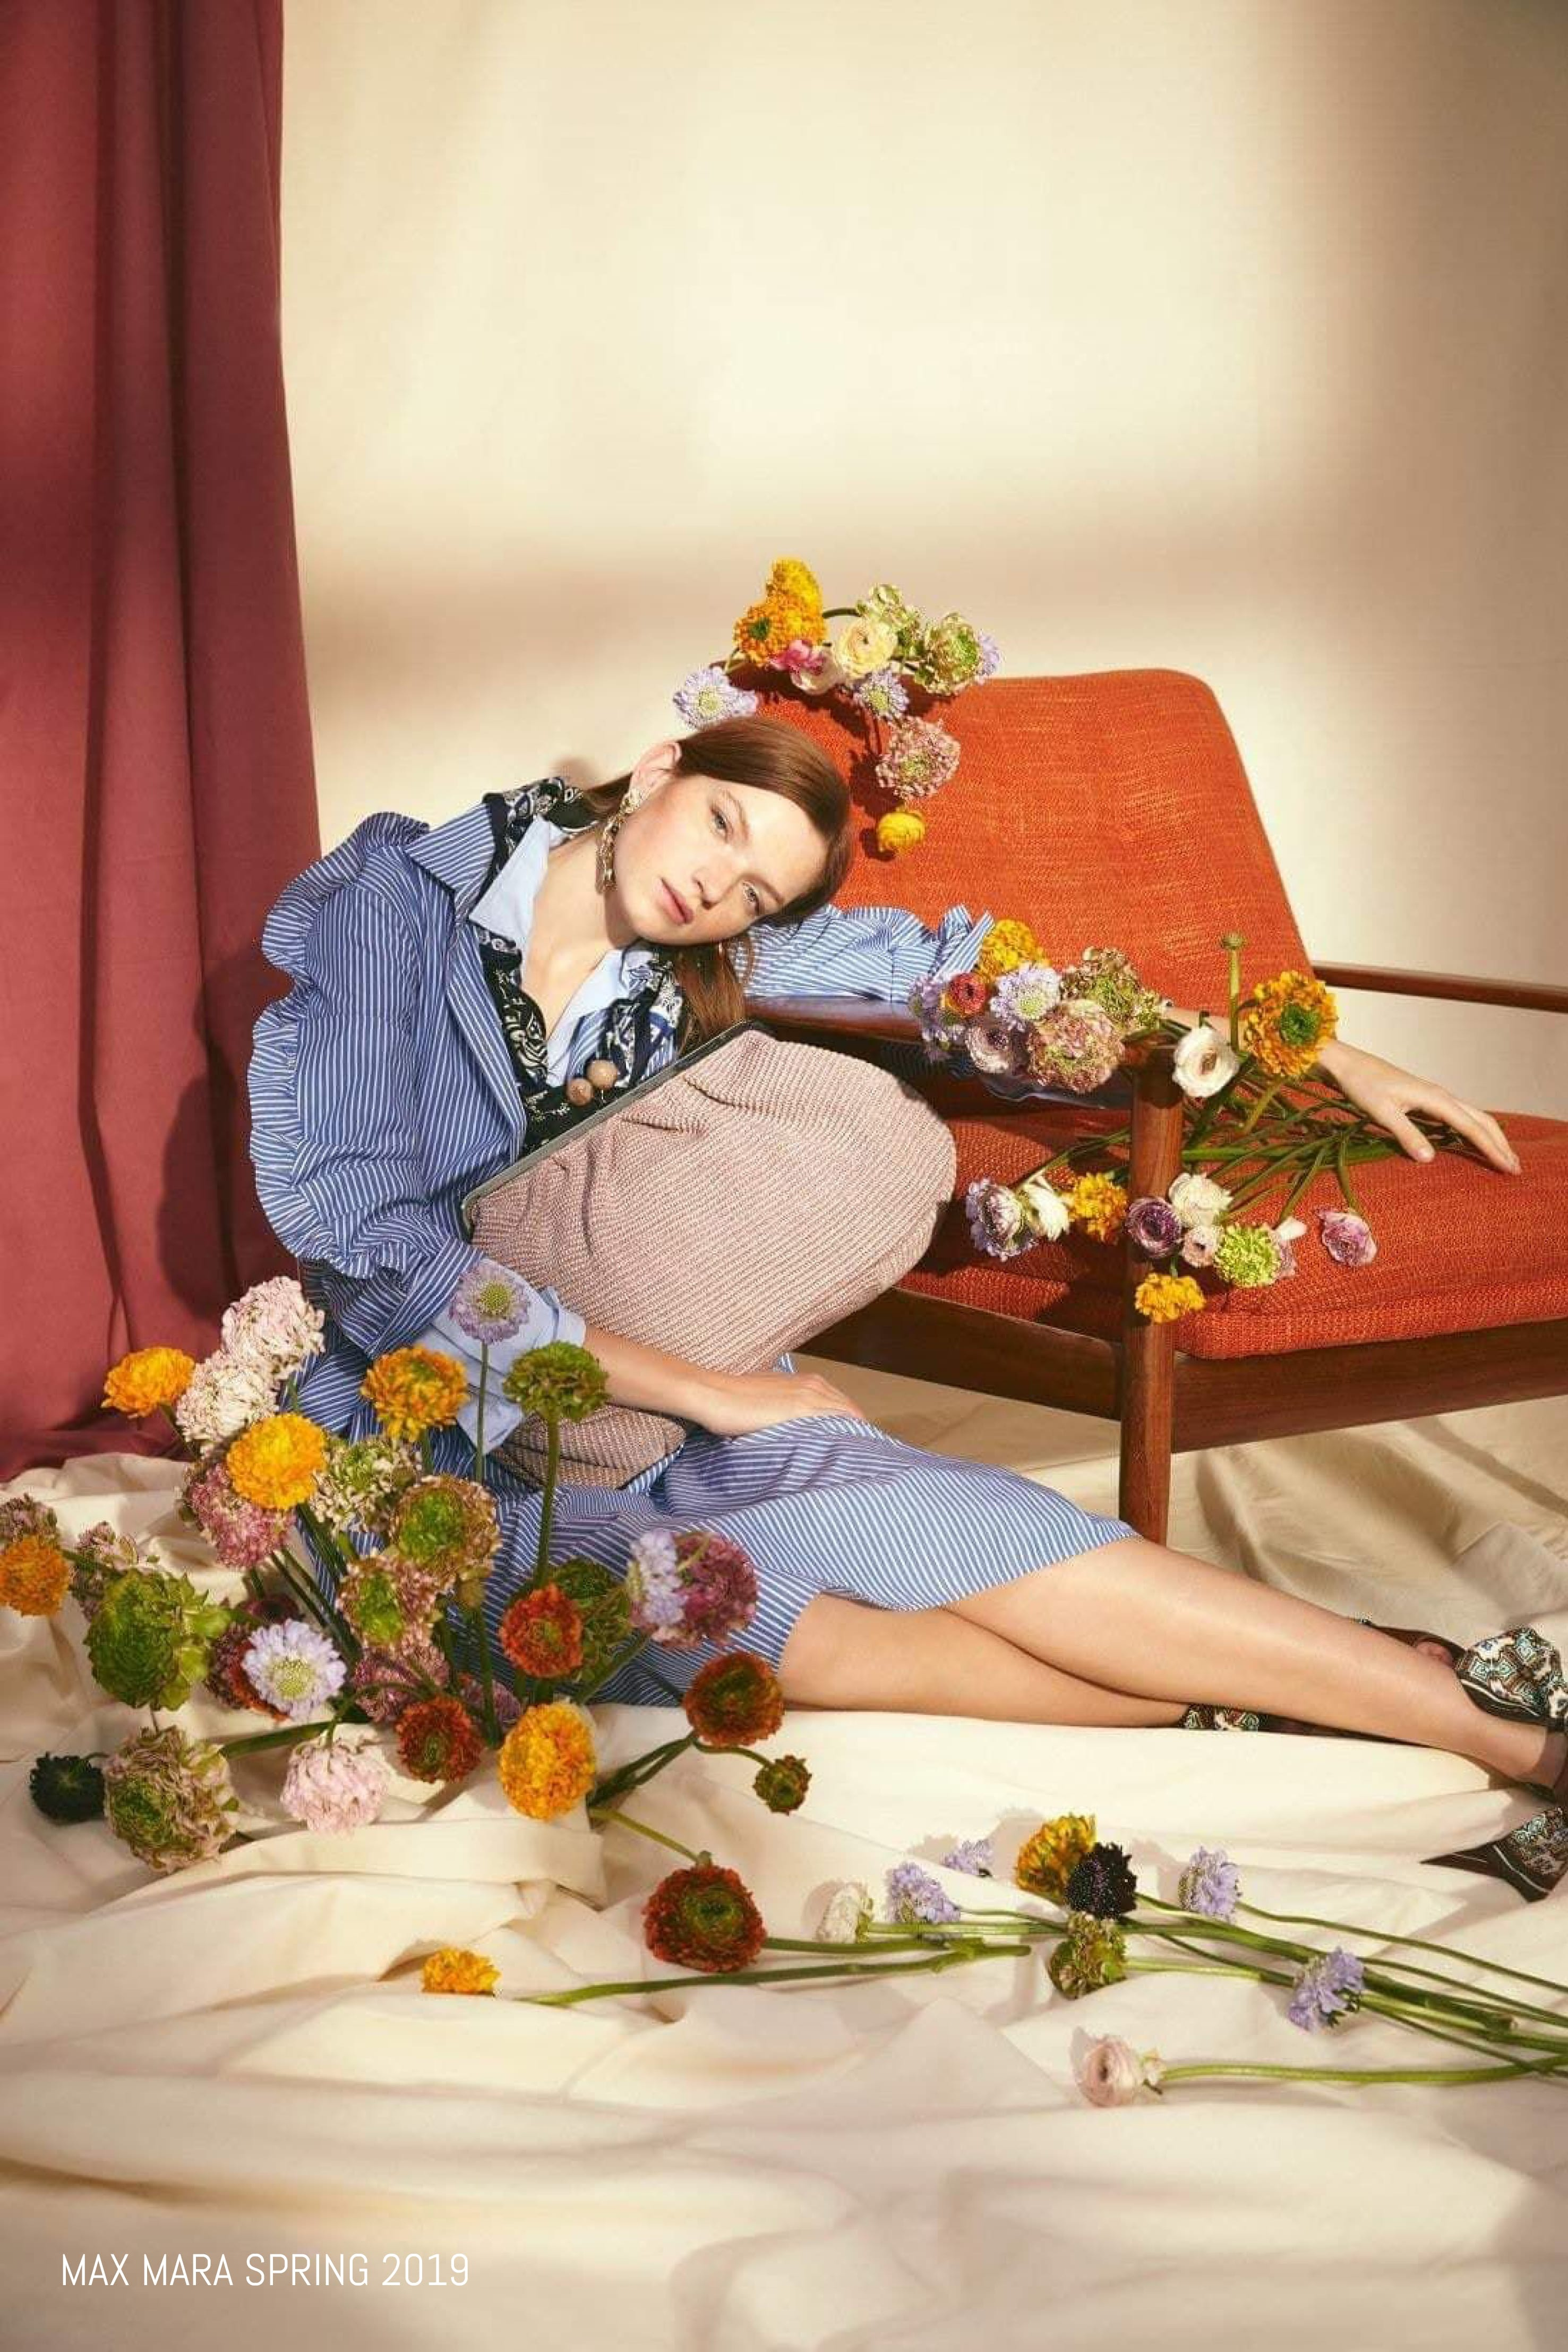 Model poses with flowers for Max Mara Spring 2018 campaign